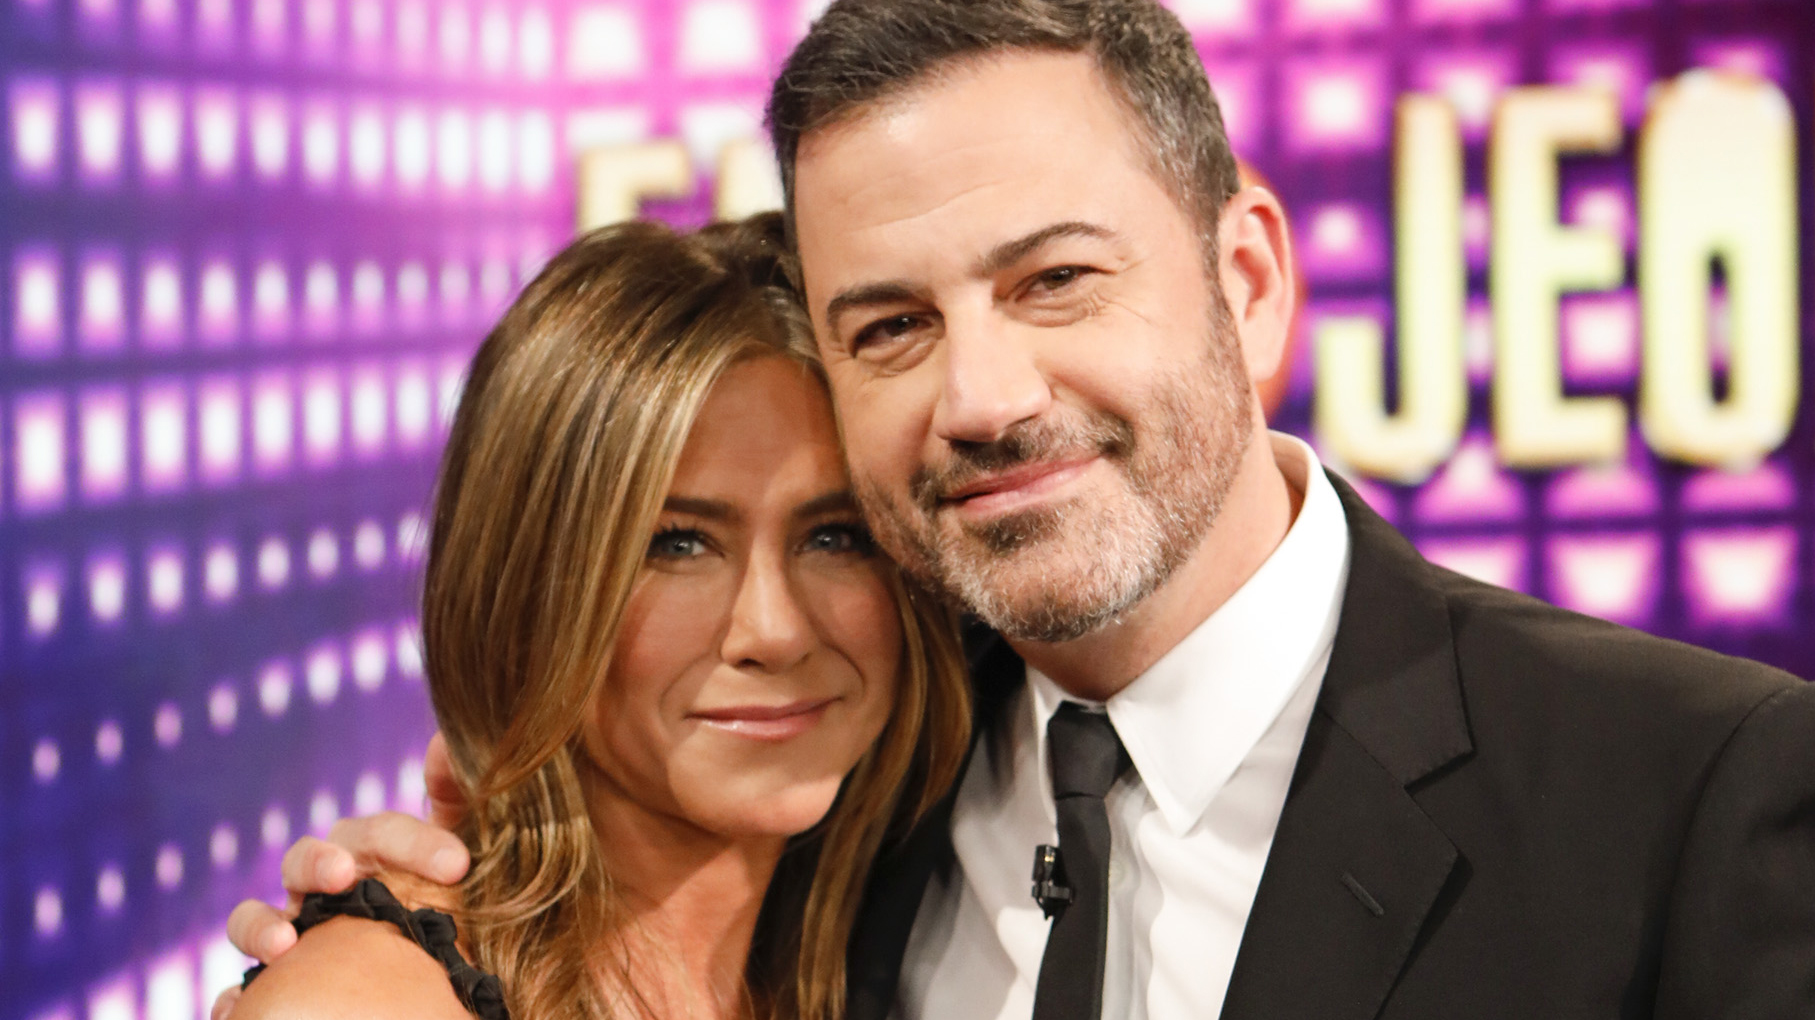 Jennifer Aniston, Jimmy Kimmel face fire scare on stage at 2020 Emmy Awards - fox